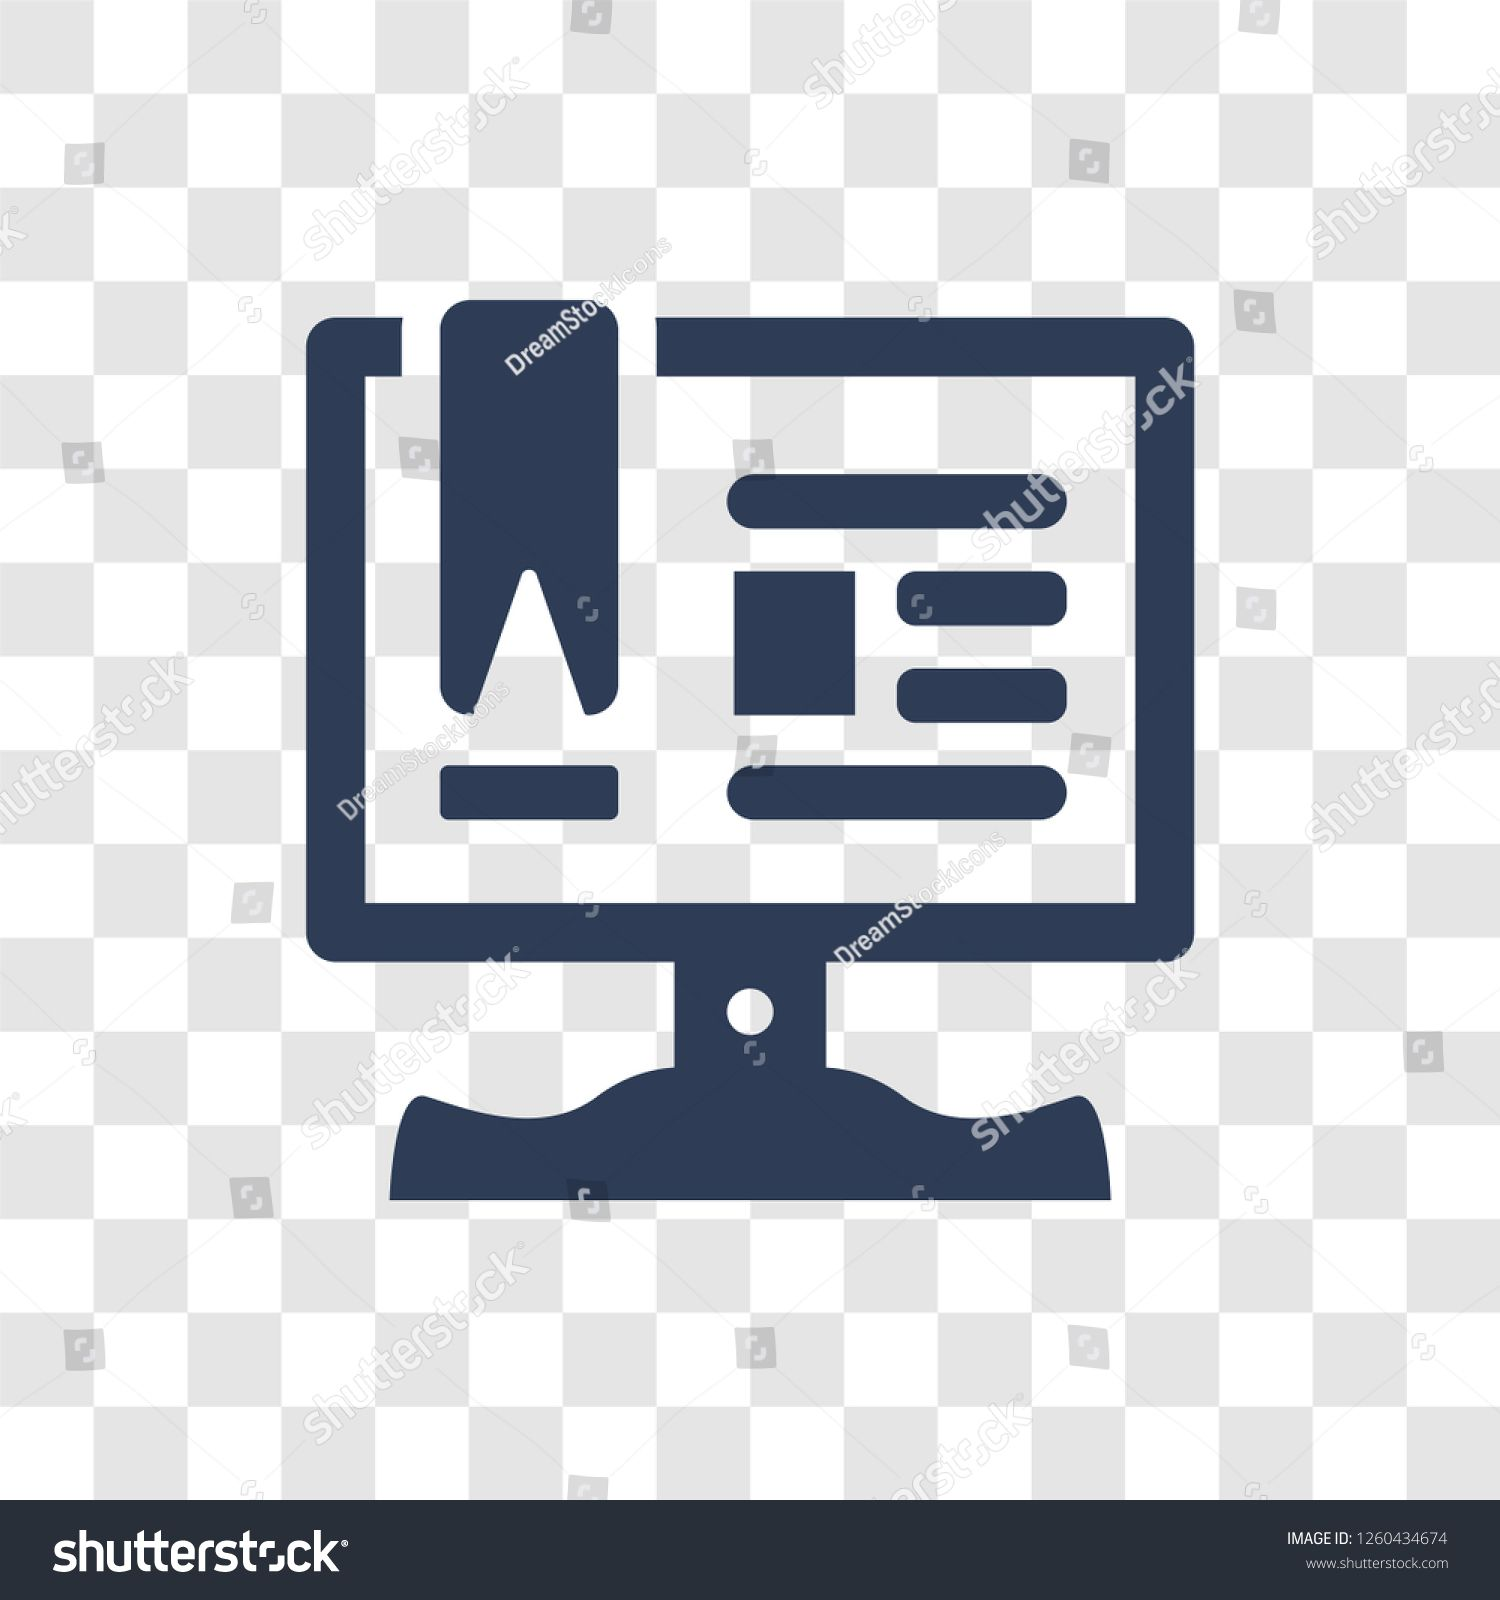 Notes Icon Trendy Notes Logo Concept On Transparent Background